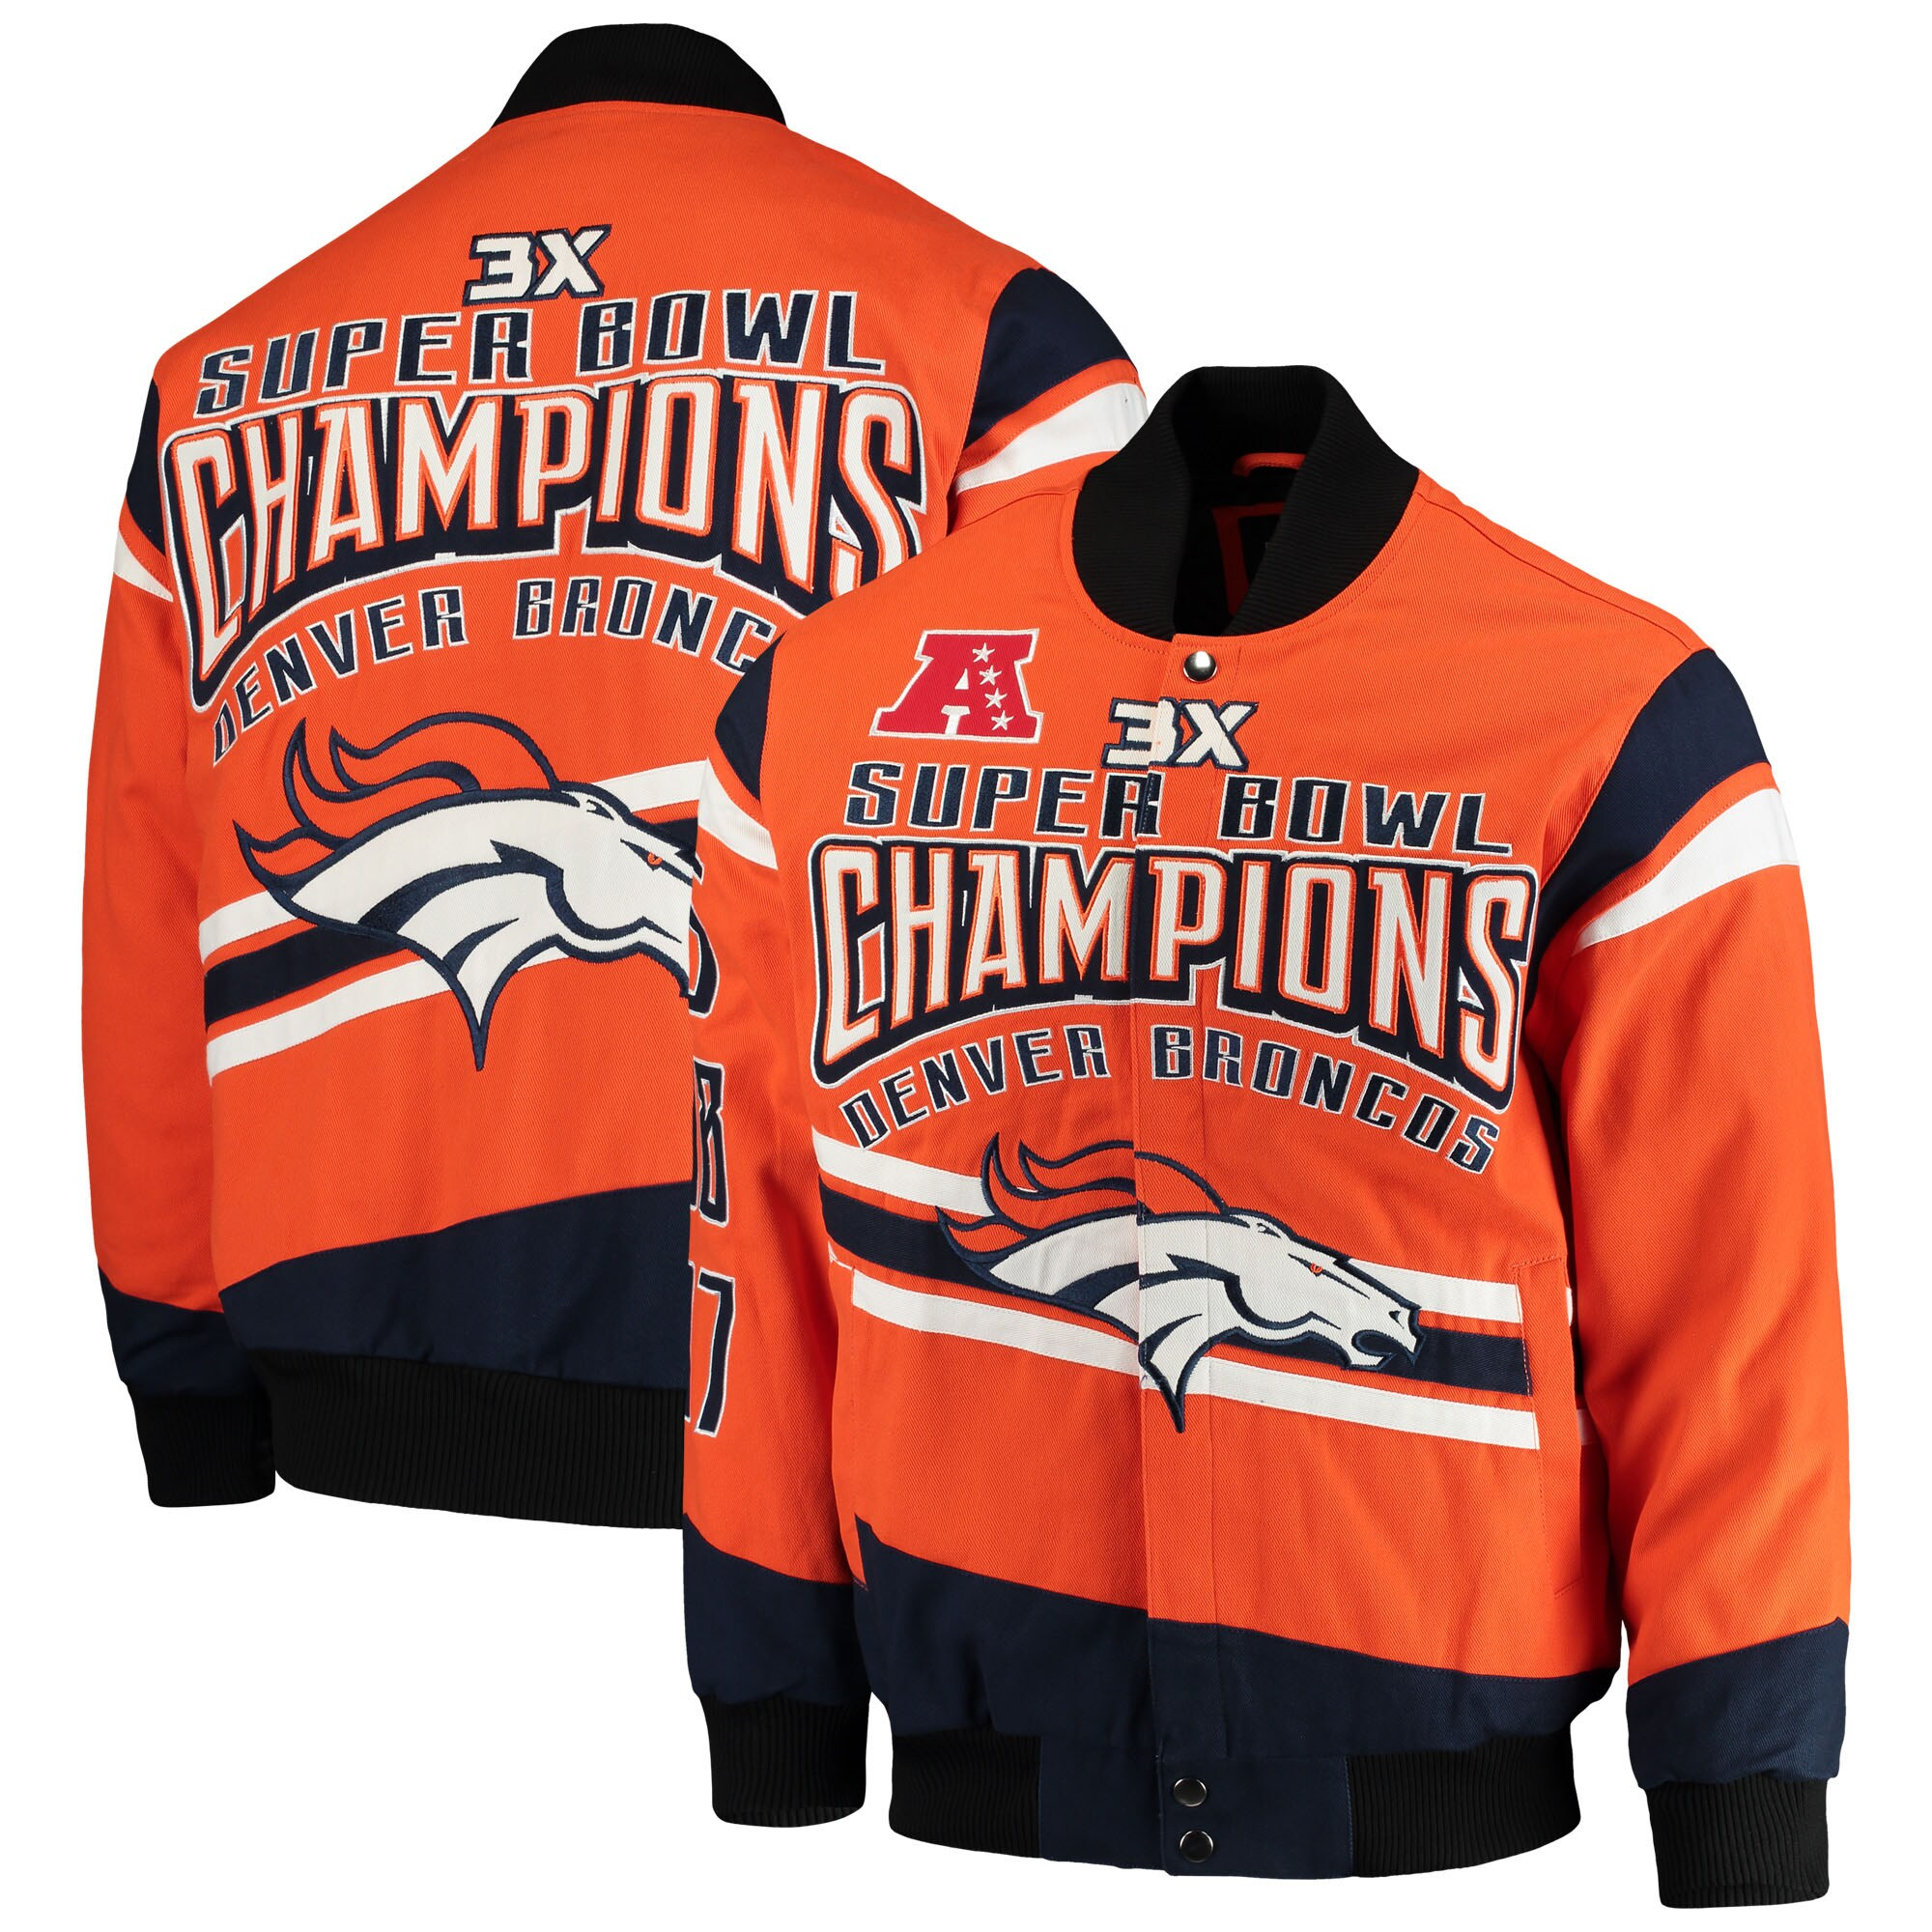 Denver Broncos G-III Extreme Gladiator Commemorative Cotton Twill Jacket - Orange